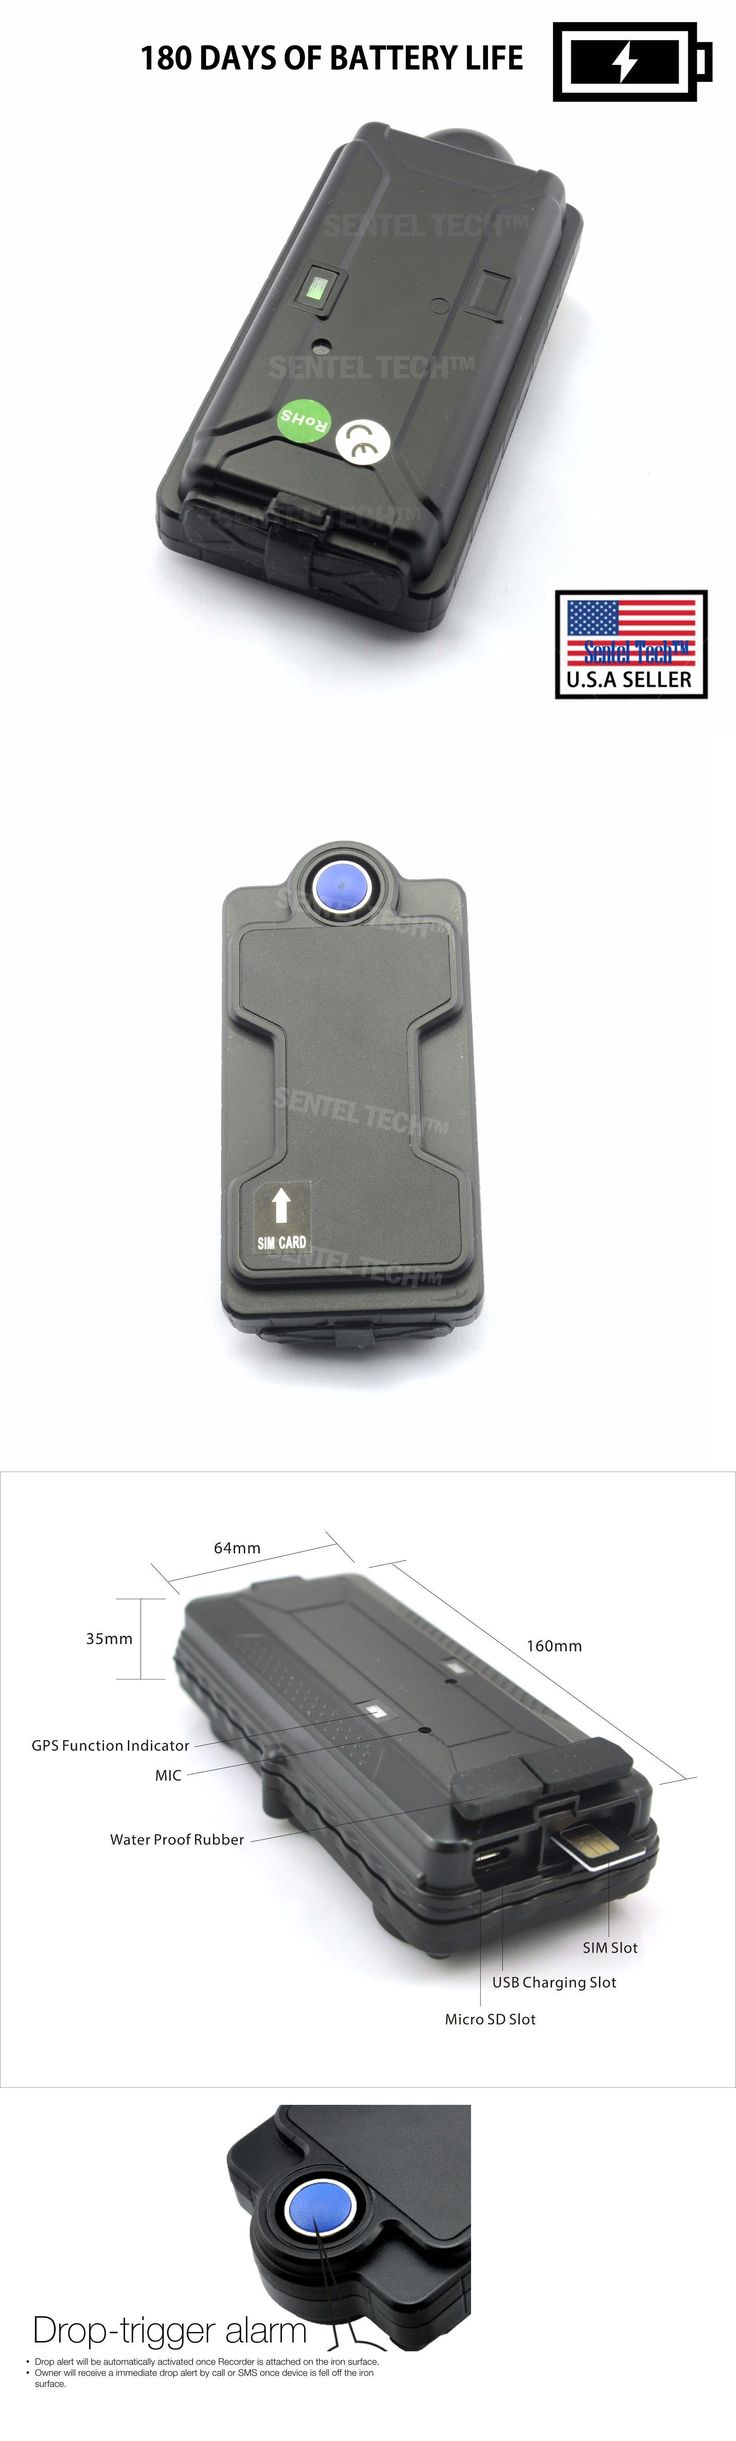 Tracking Devices: Gps Vehicle Tracking Device W Powerful Magnet Real Time Tracker On Phone Car -> BUY IT NOW ONLY: $135.99 on eBay!